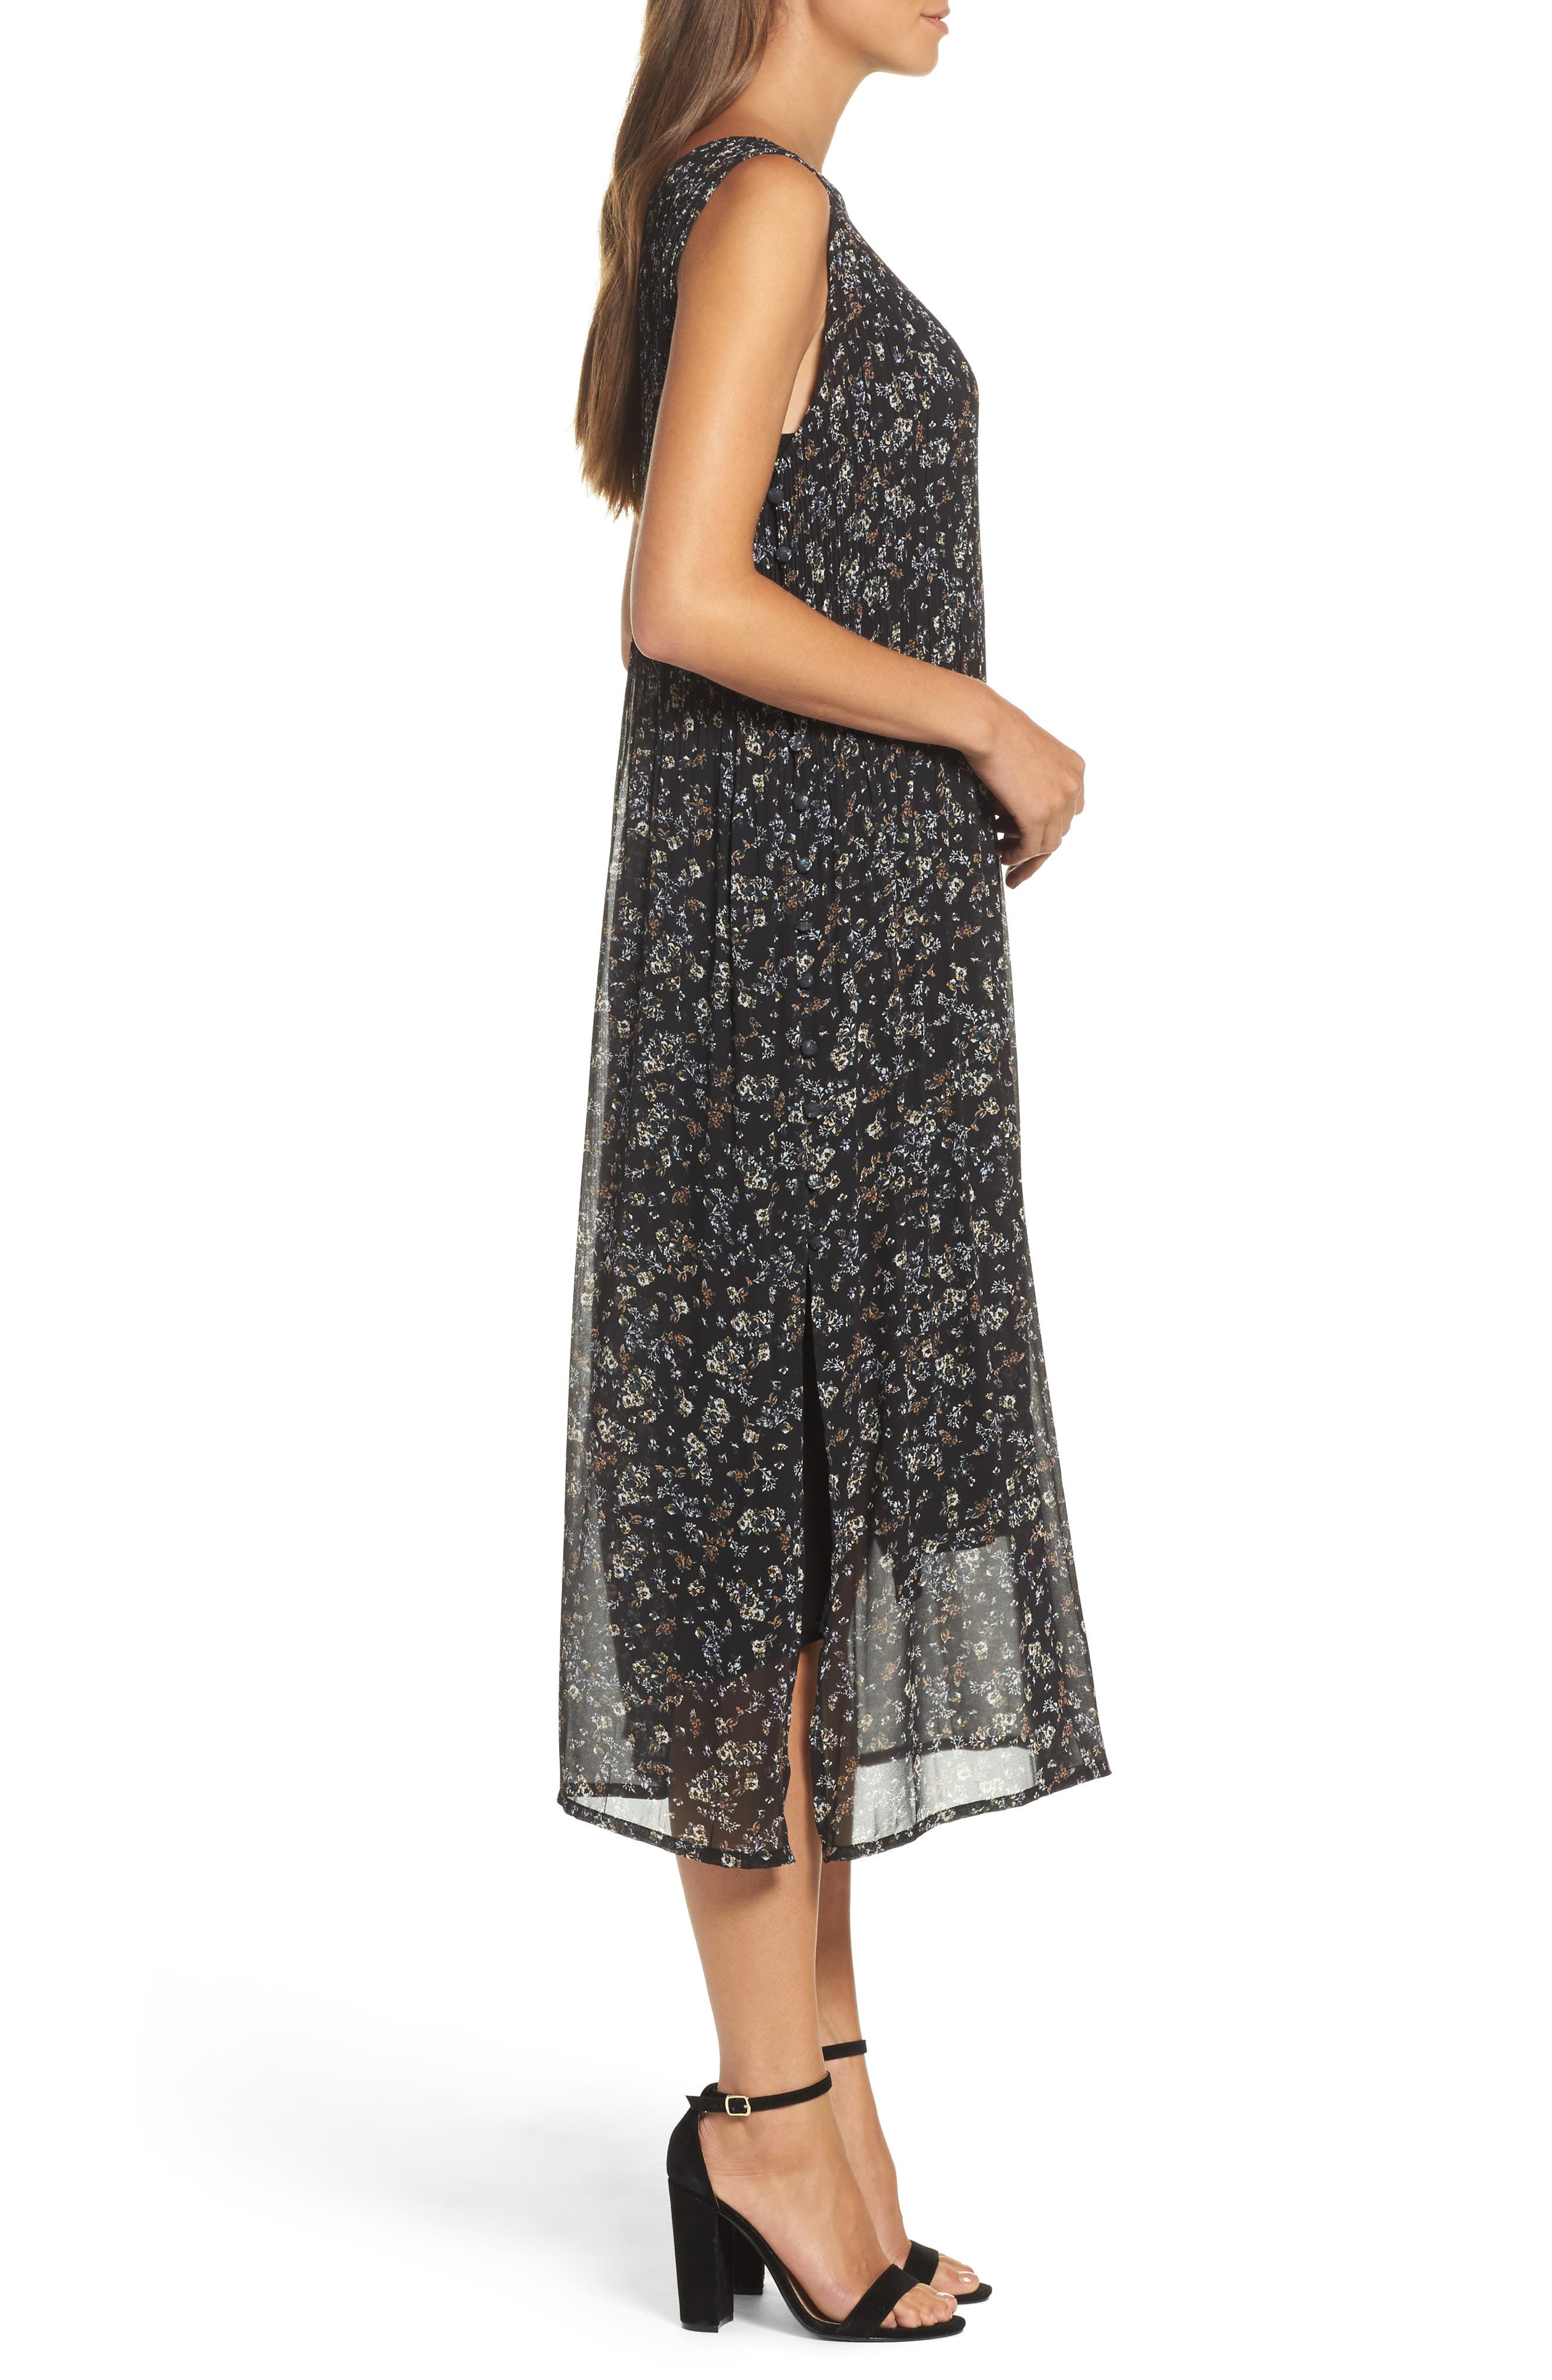 About A Girl Slipdress,                             Alternate thumbnail 3, color,                             003